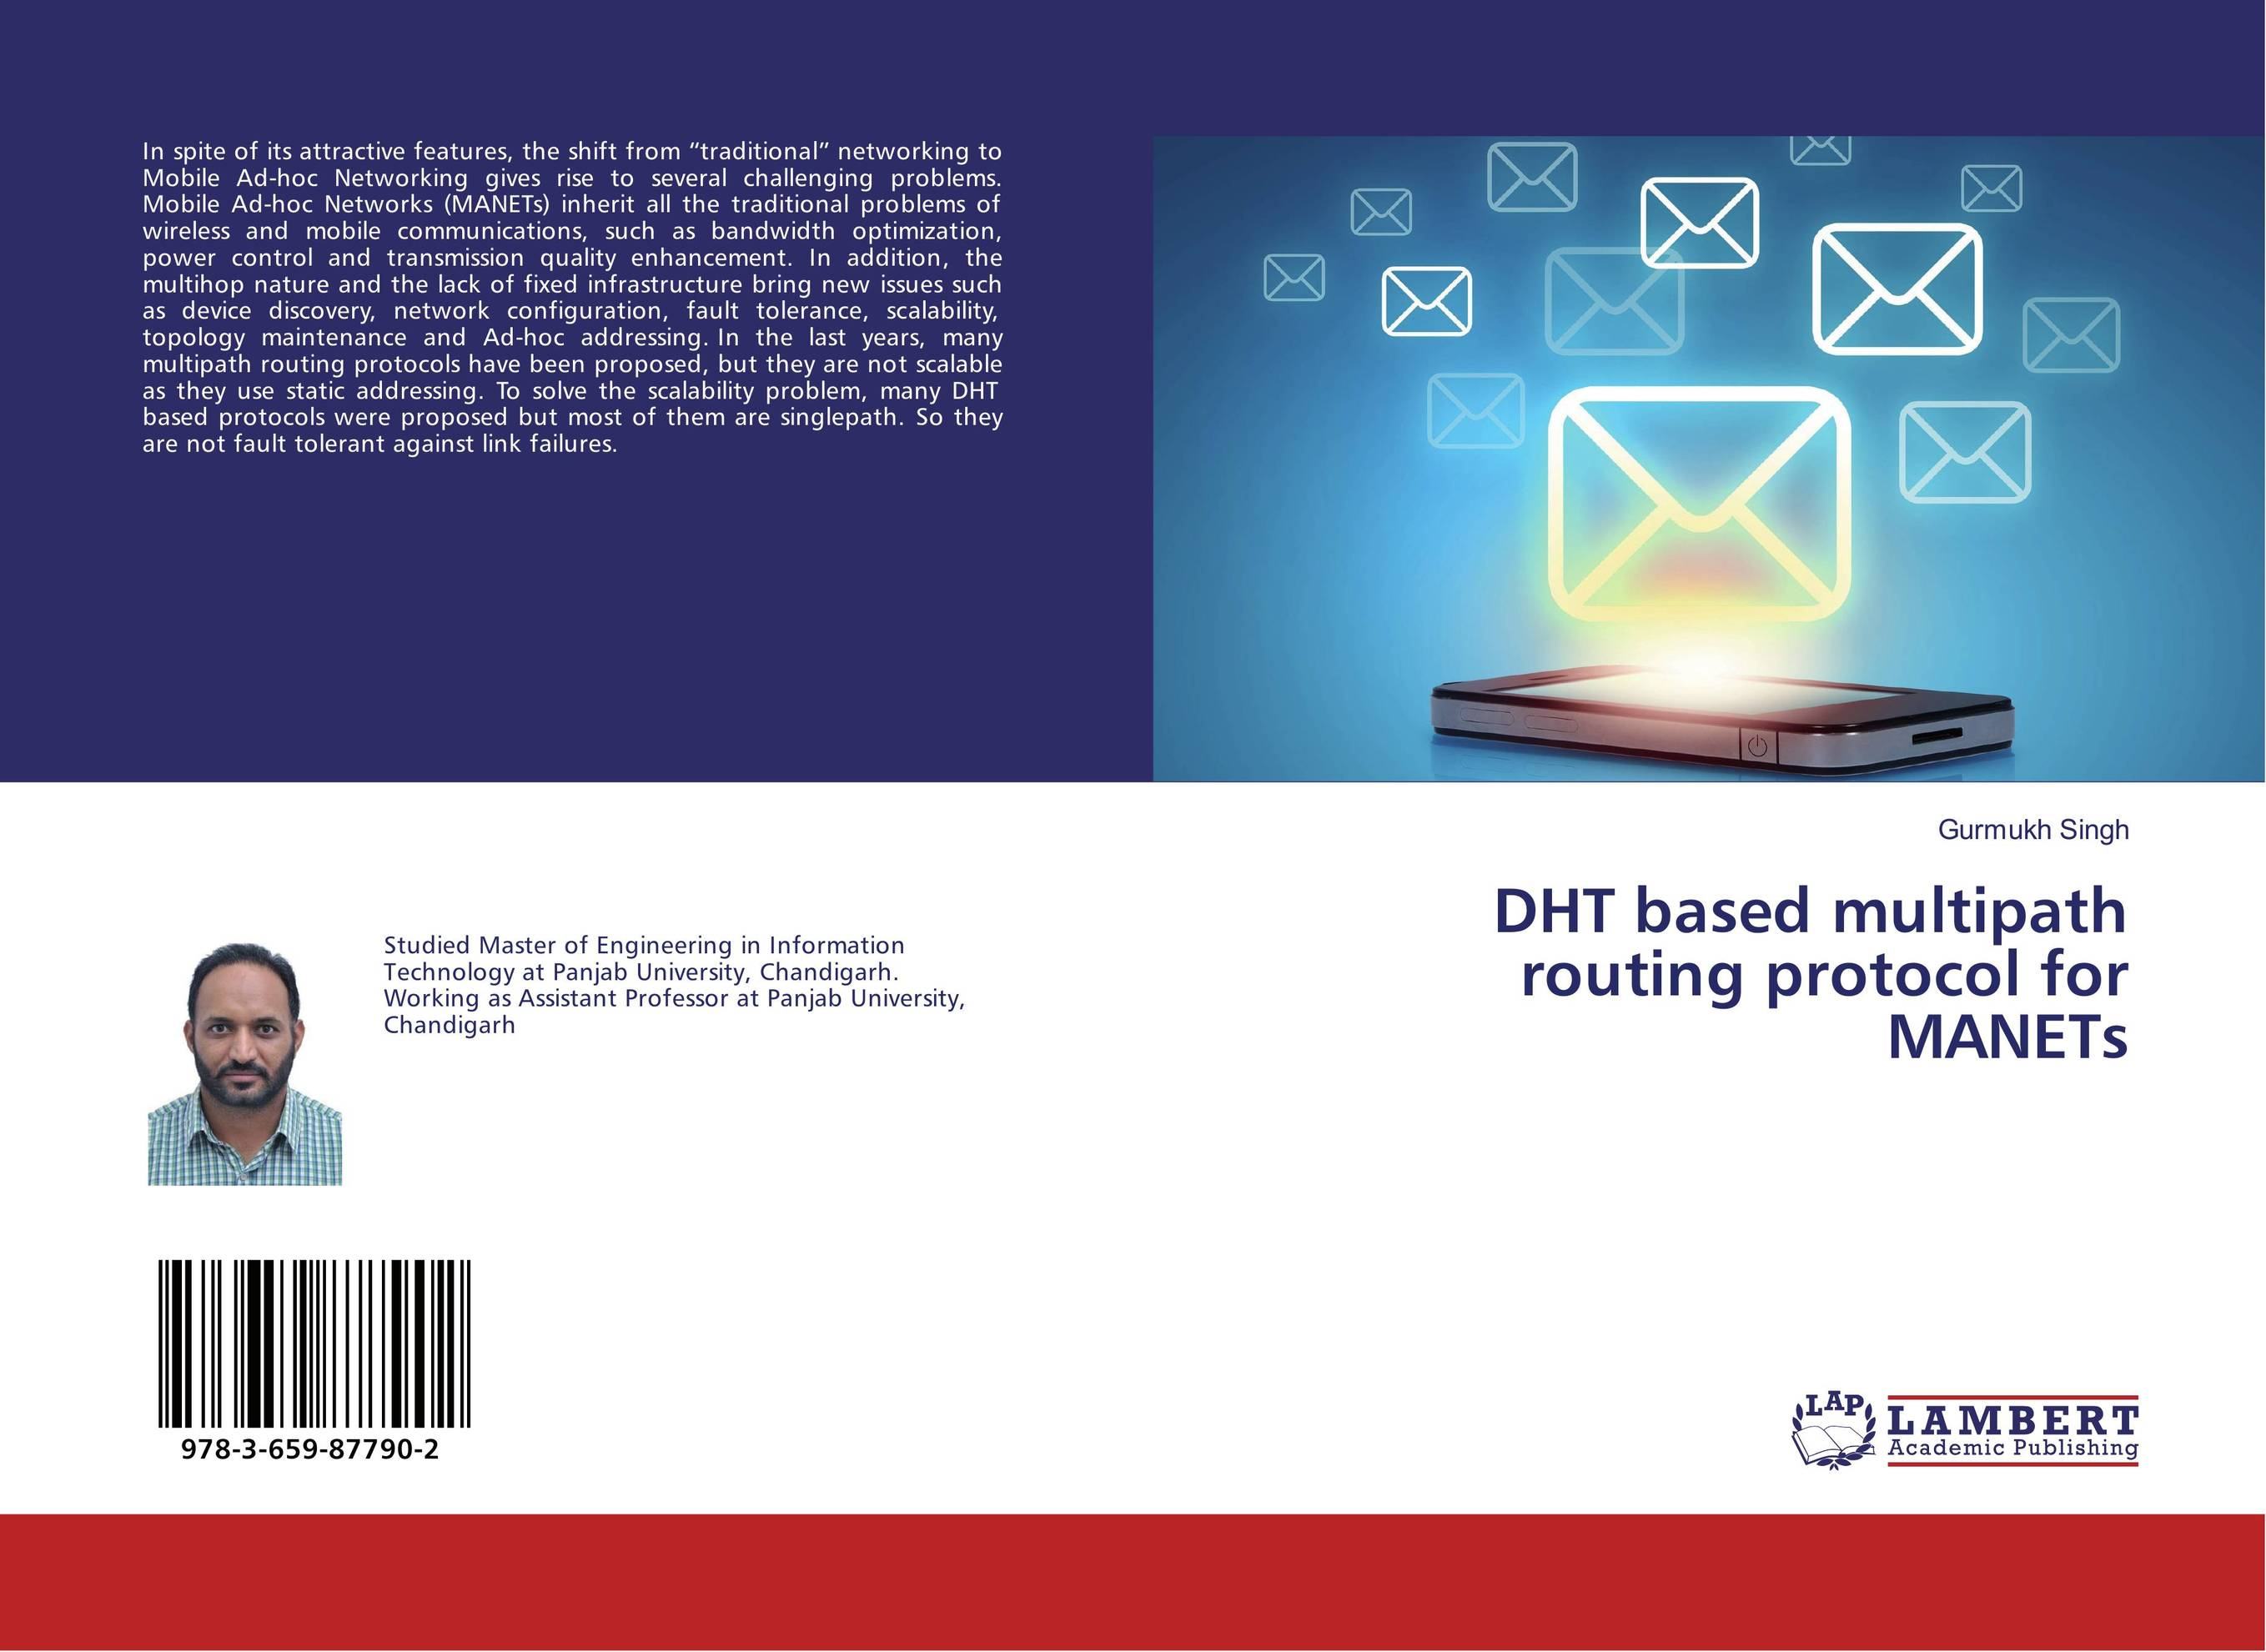 DHT based multipath routing protocol for MANETs zhili sun satellite networking principles and protocols